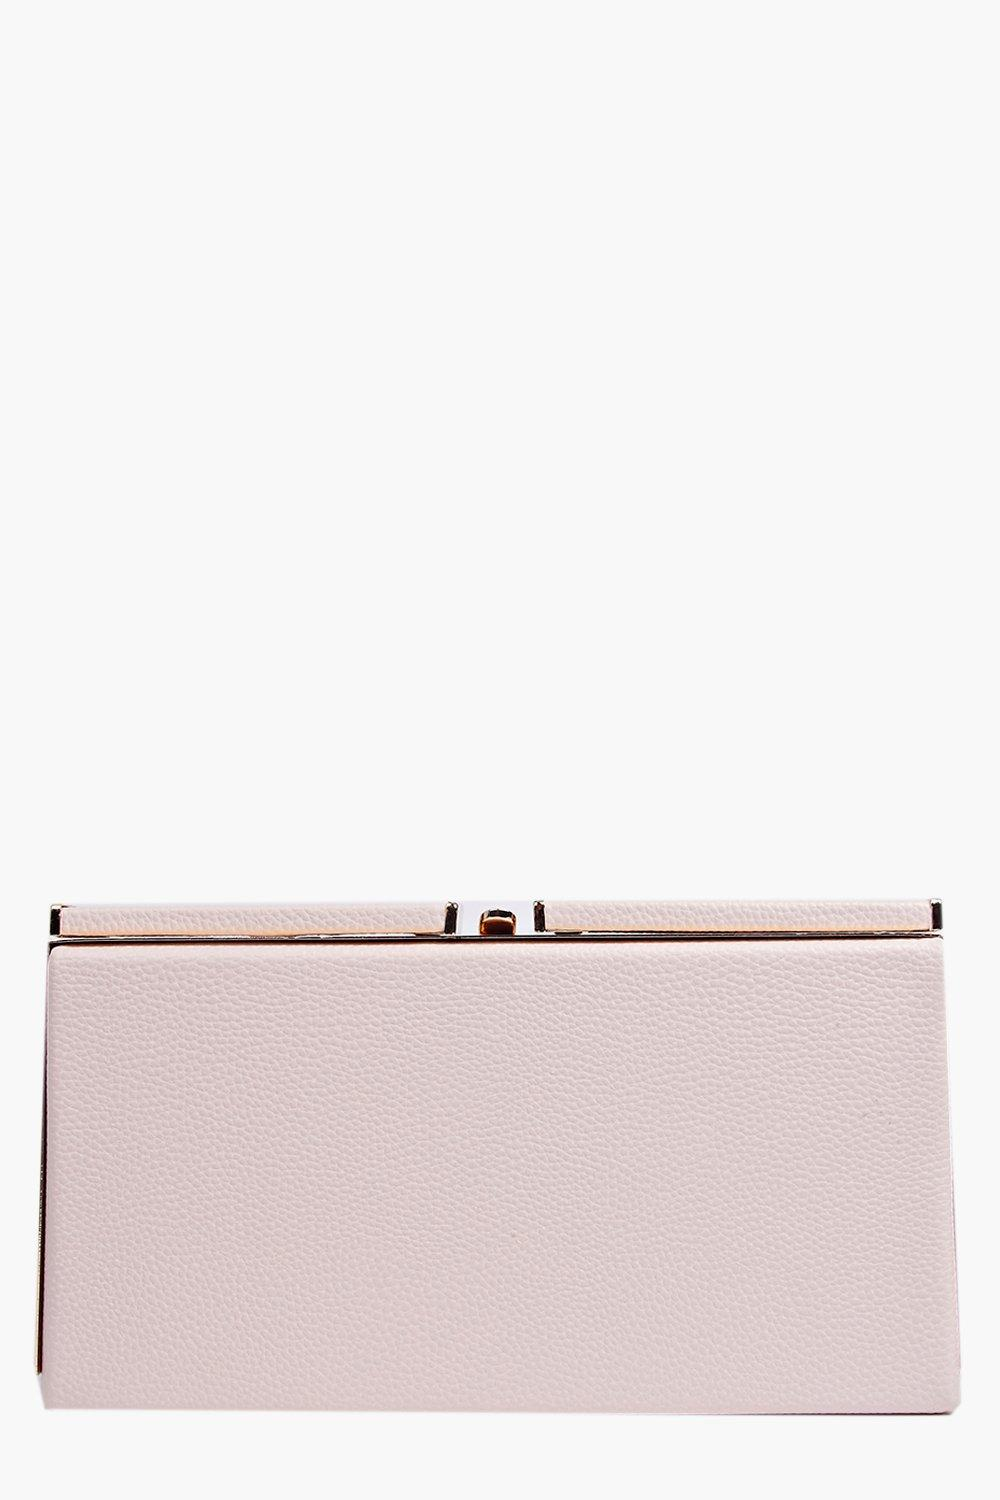 Emma Oversize Box Clutch Bag